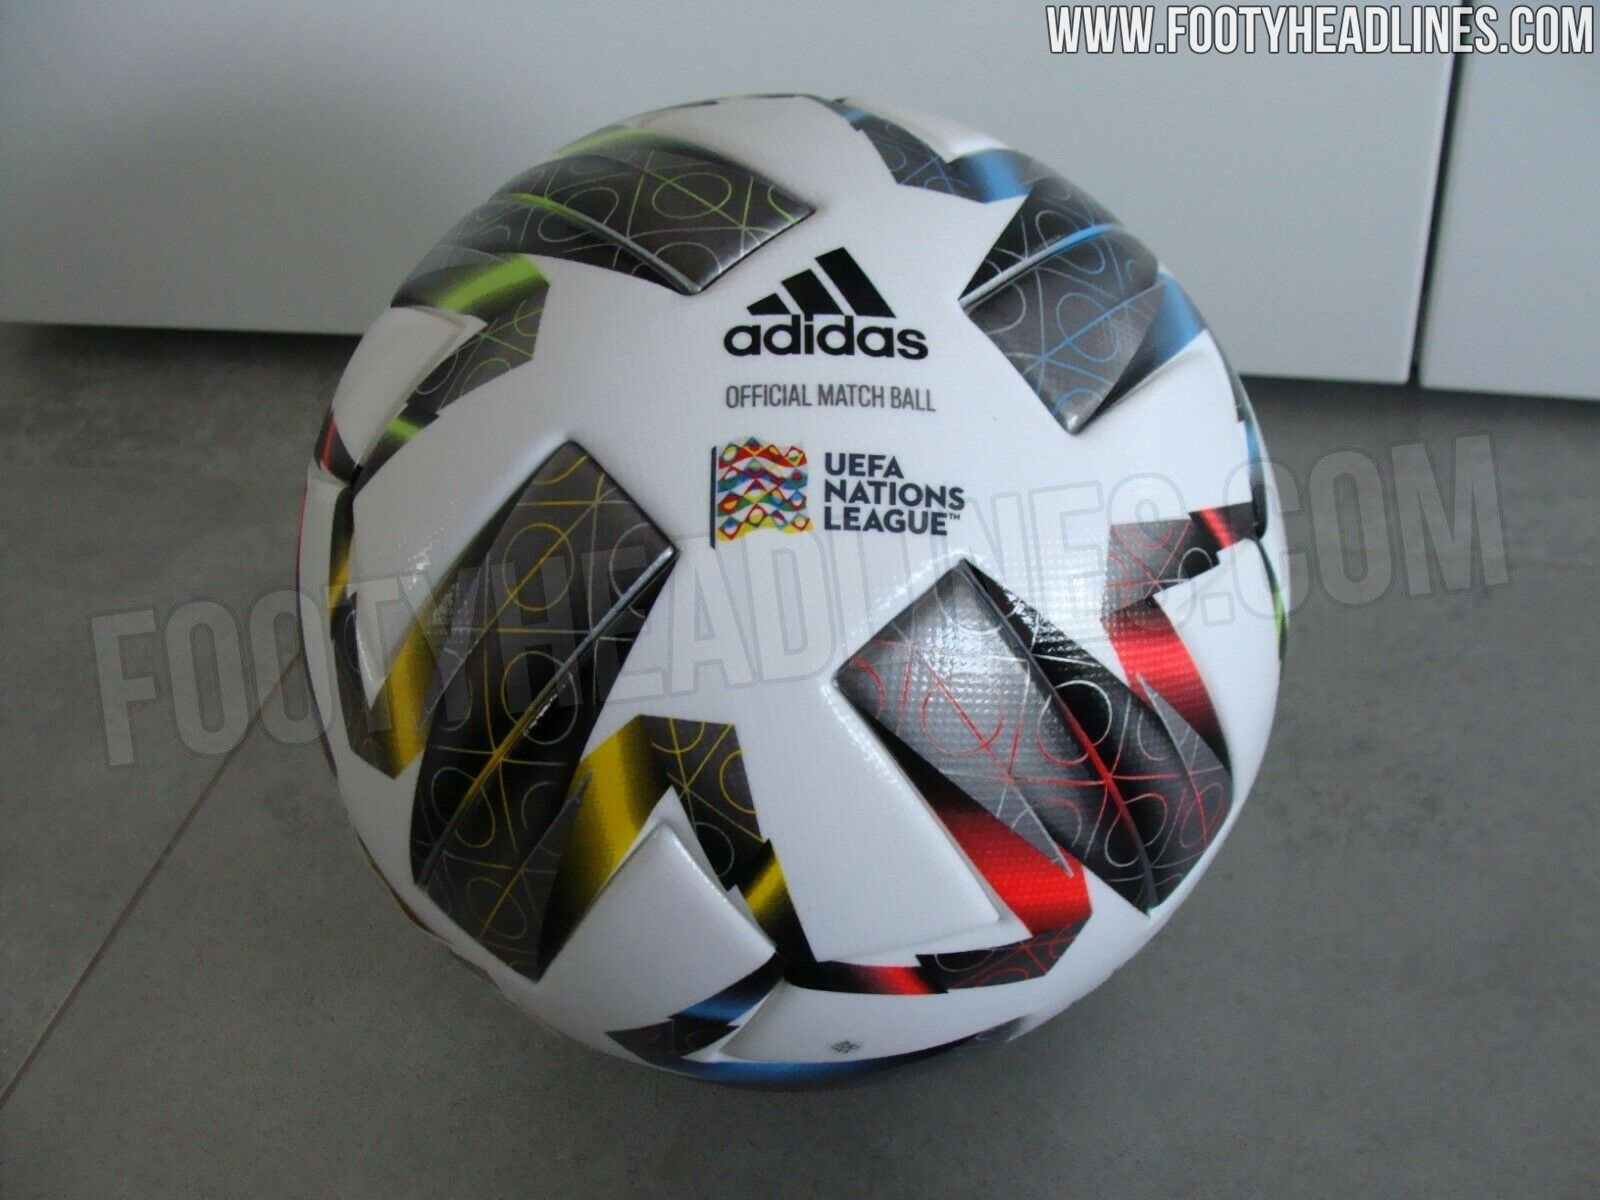 Adidas UEFA Nations League 2020-2021 Ball Leaked - Footy ...